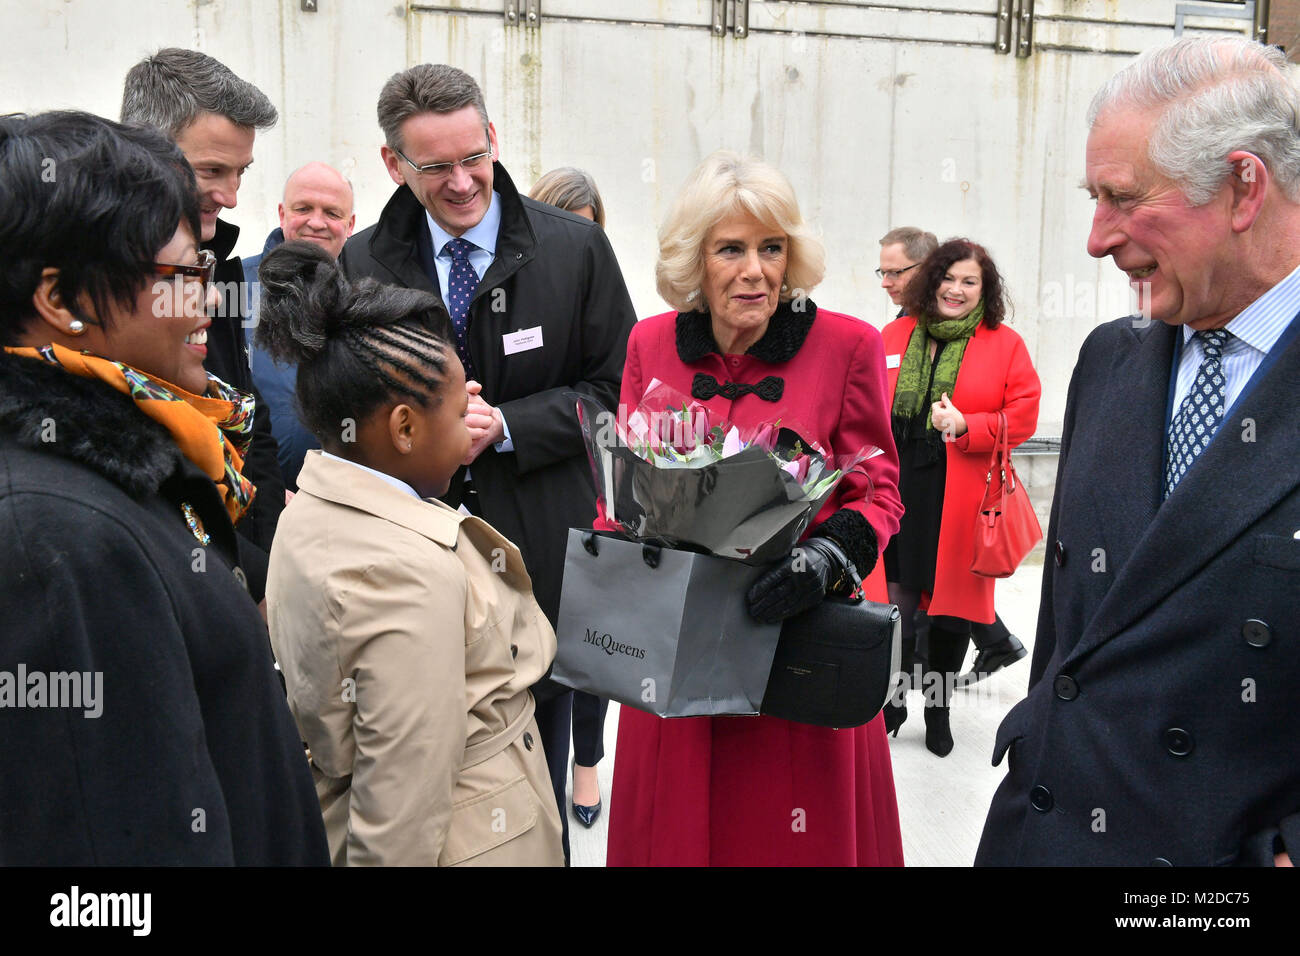 The Prince of Wales and Duchess of Cornwall arrive for the official opening The National Grid's London Power - Stock Image